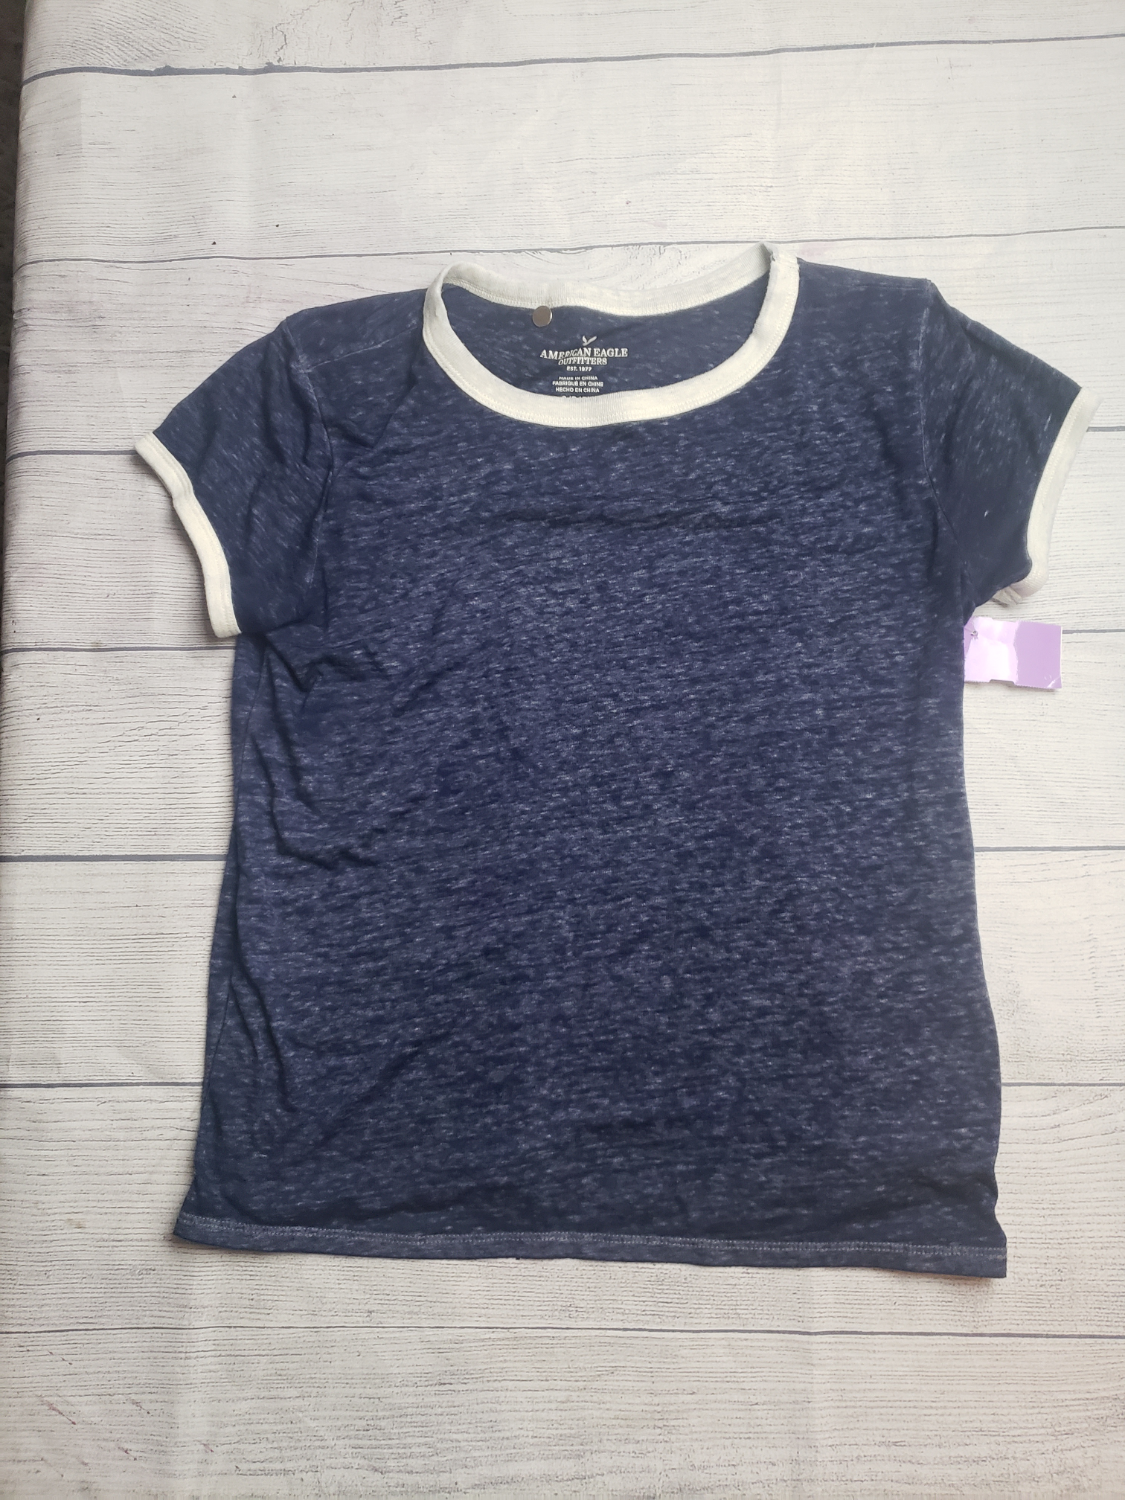 American Eagle Short Sleeve Top Size Small - Plato's Closet